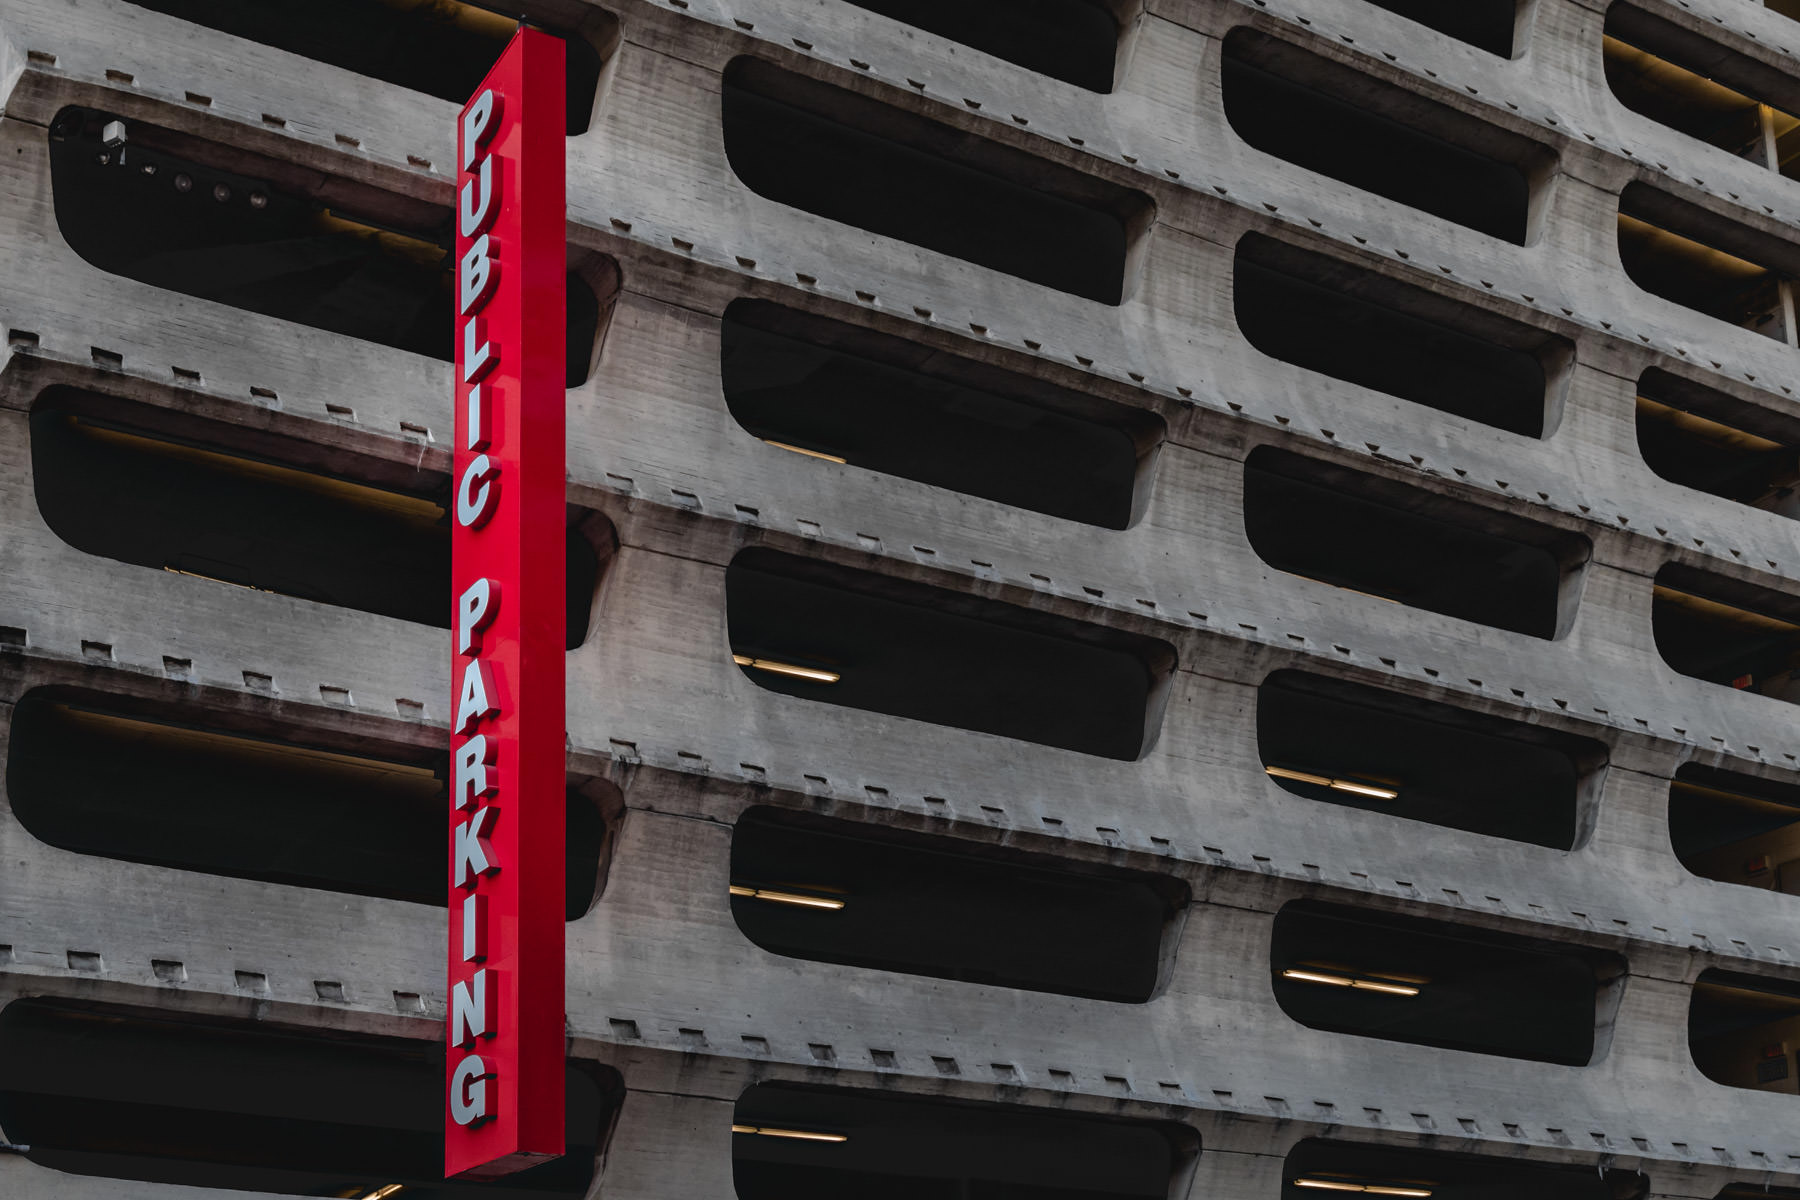 A bright red parking garage sign, spotted in Downtown Dallas.